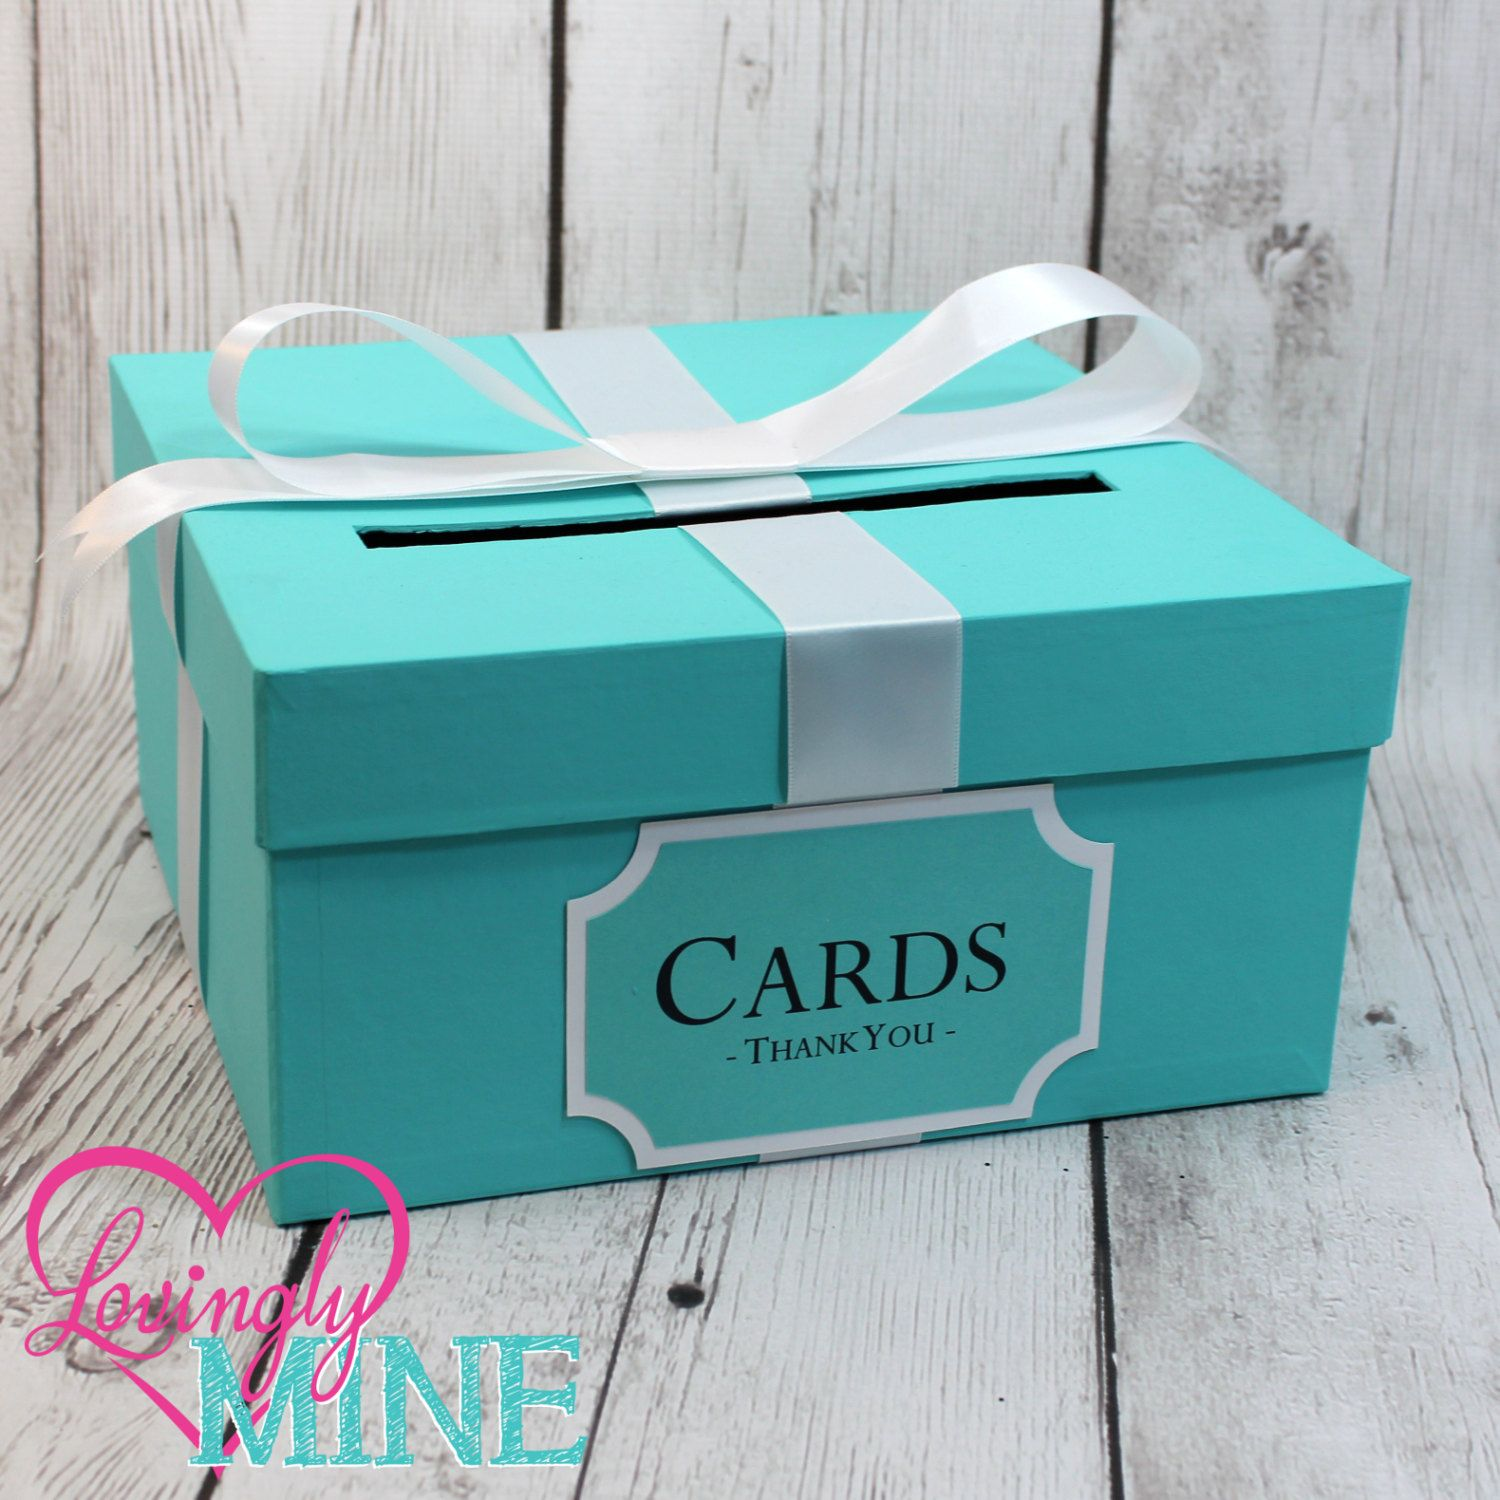 card holder box with sign in light teal white gift money box for any event wedding bridal shower birthday baby shower